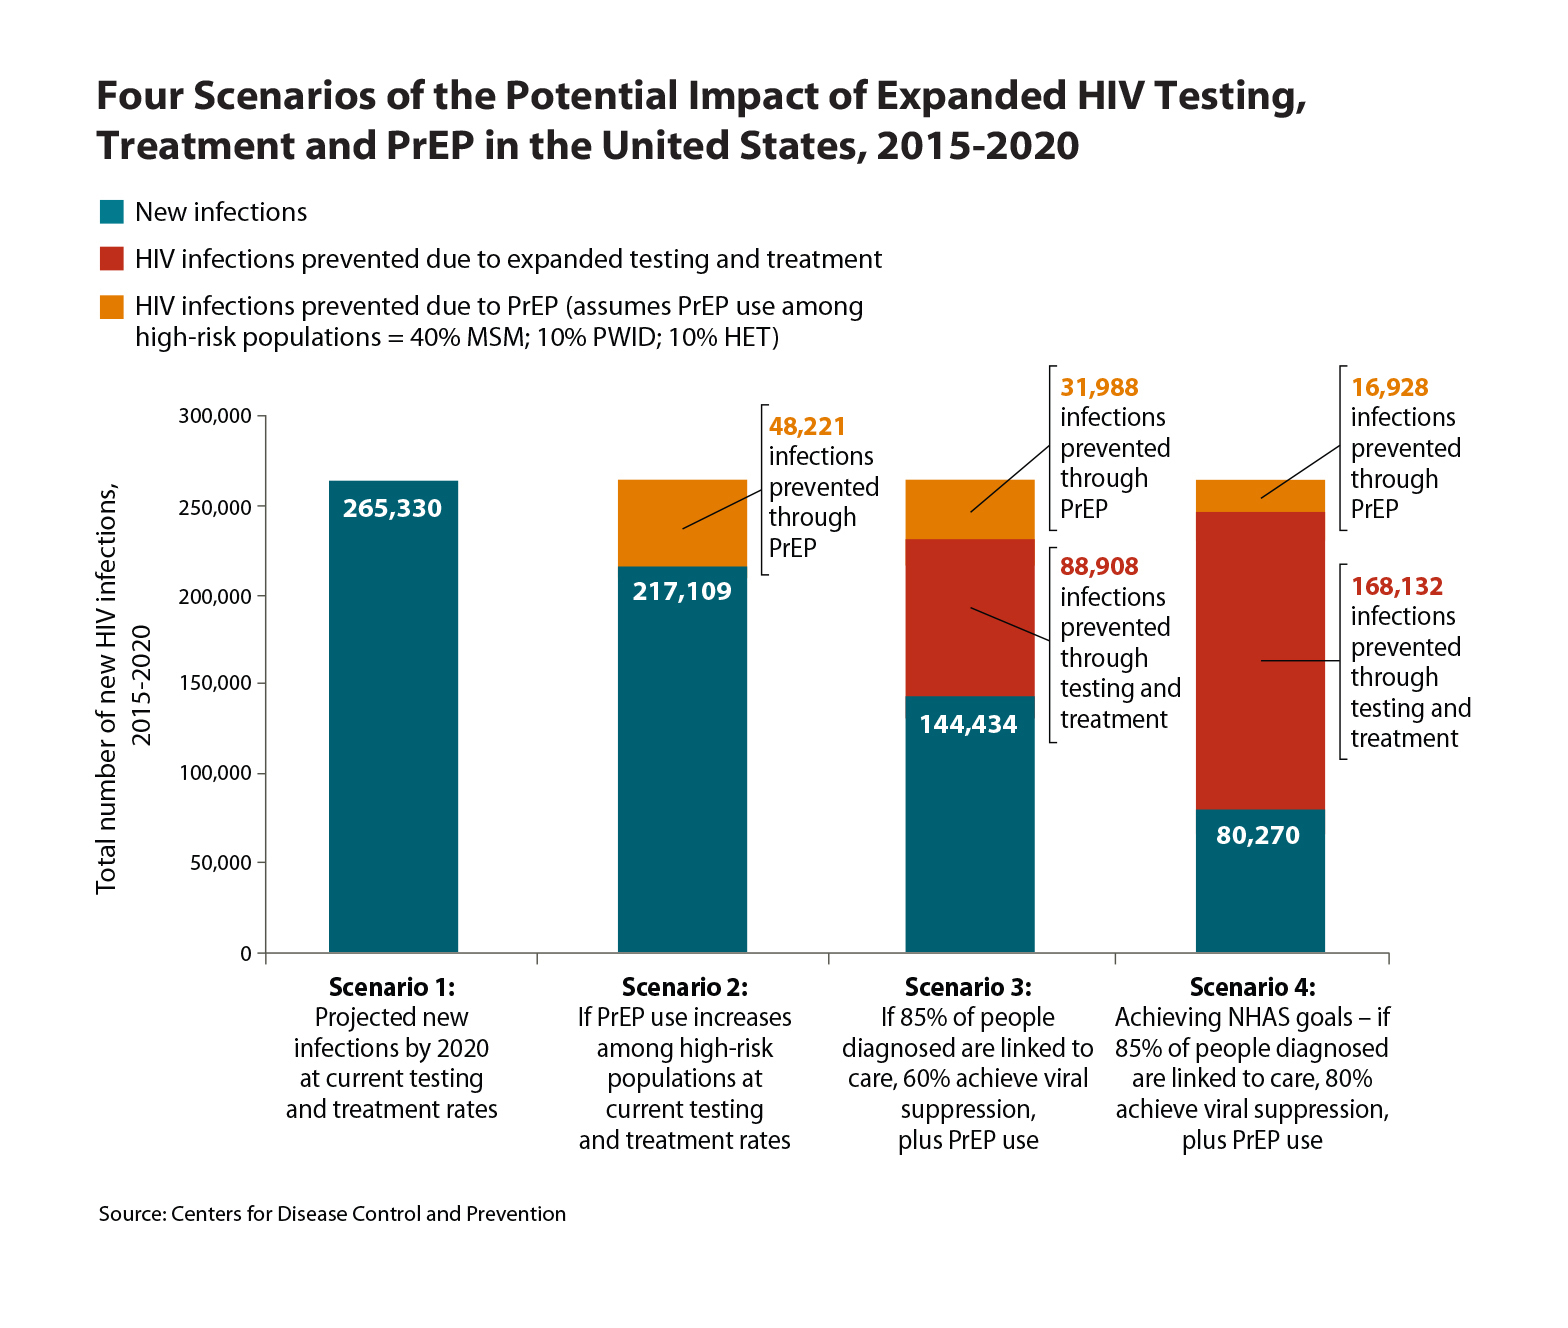 Four Scenarios of the Potential Impact of Expanded HIV Testing, Treatment and PrEP in the US, 2015-2020